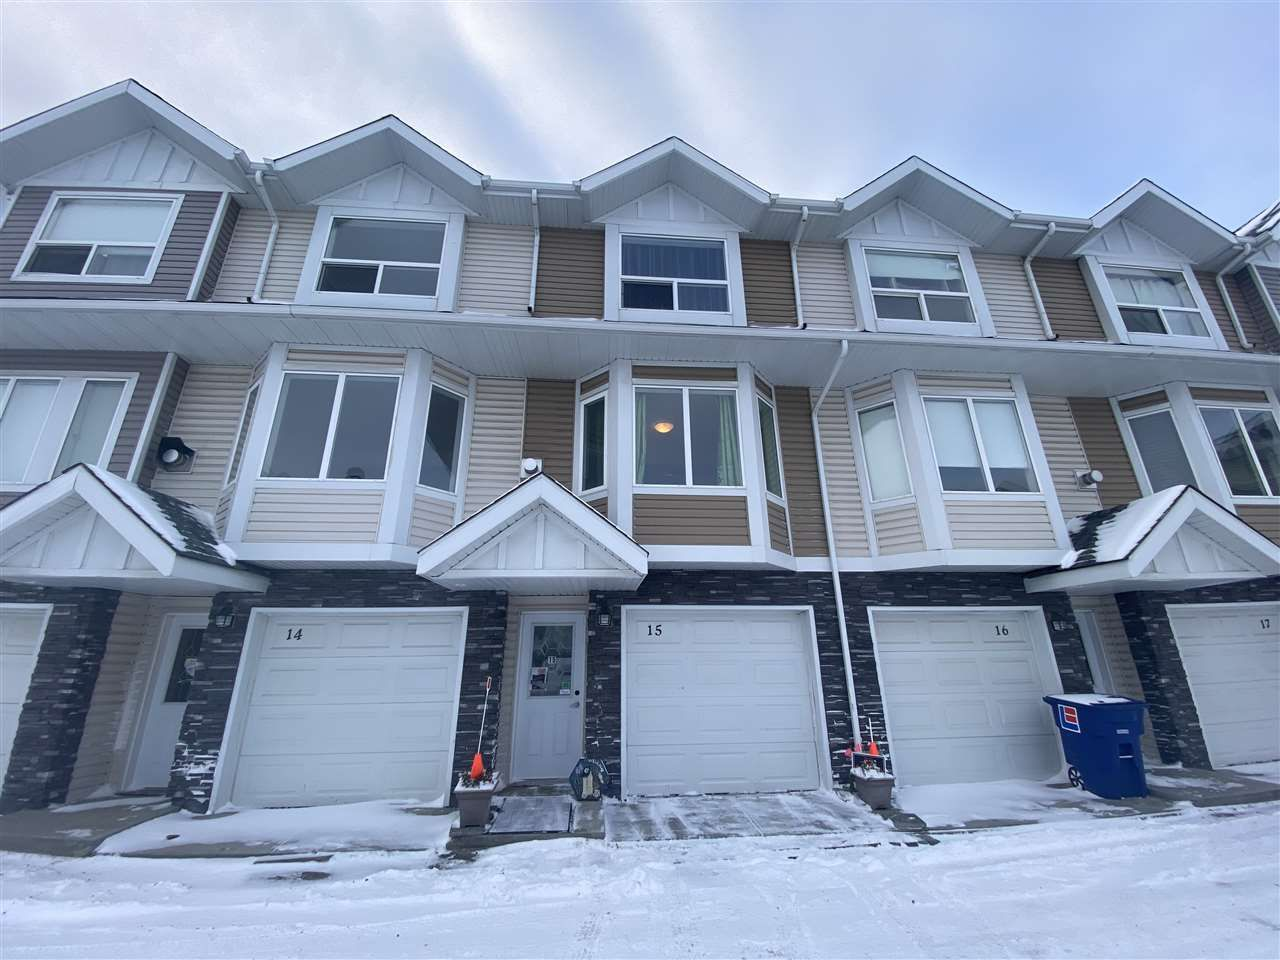 Main Photo: 15 13215 153 Avenue in Edmonton: Zone 27 Townhouse for sale : MLS®# E4220487